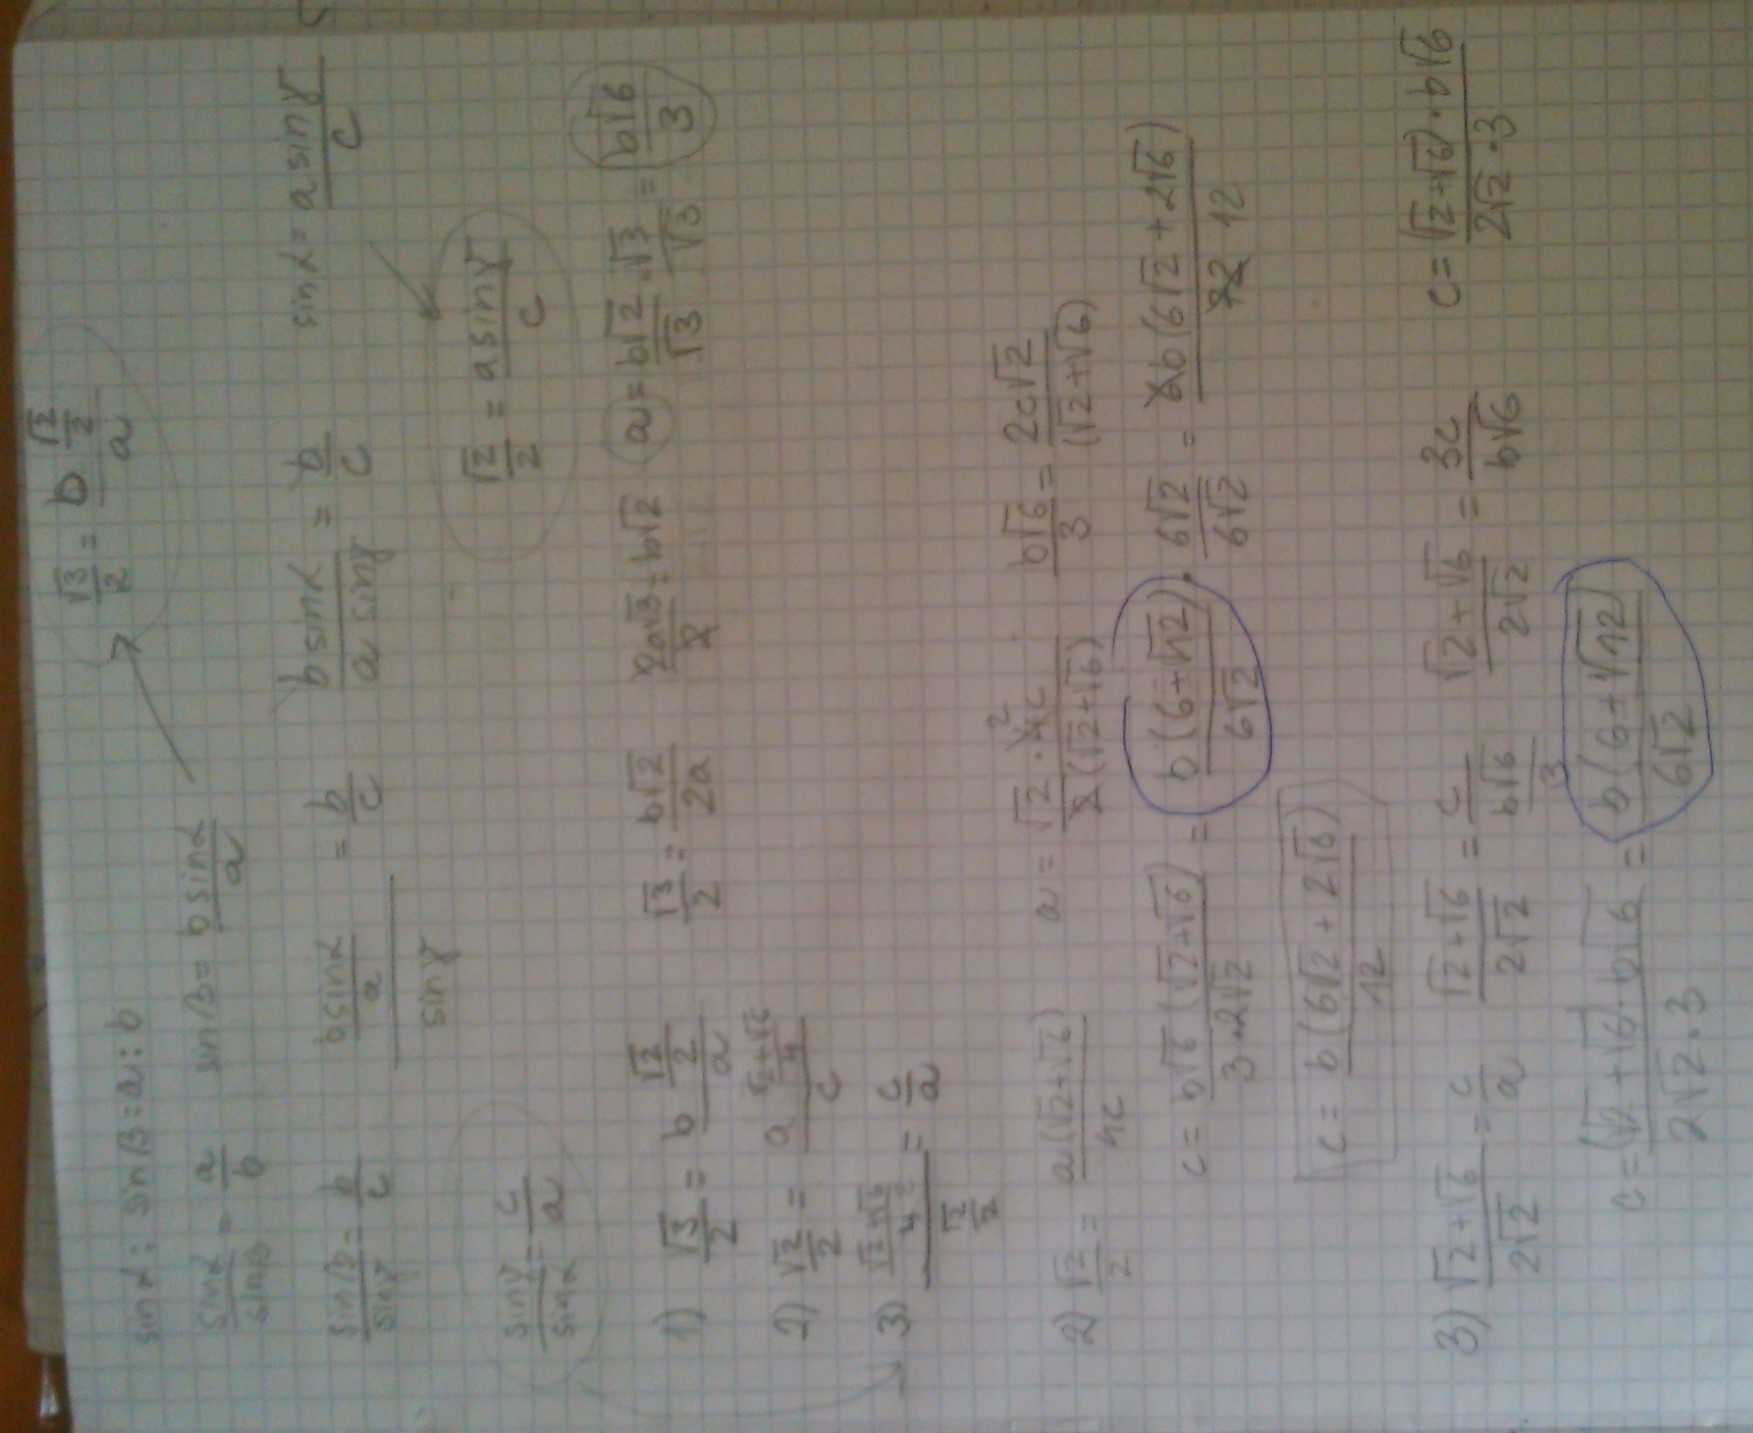 //forum.matematika.cz/upload3/img/2019-07/14865_DSC_0144.JPG